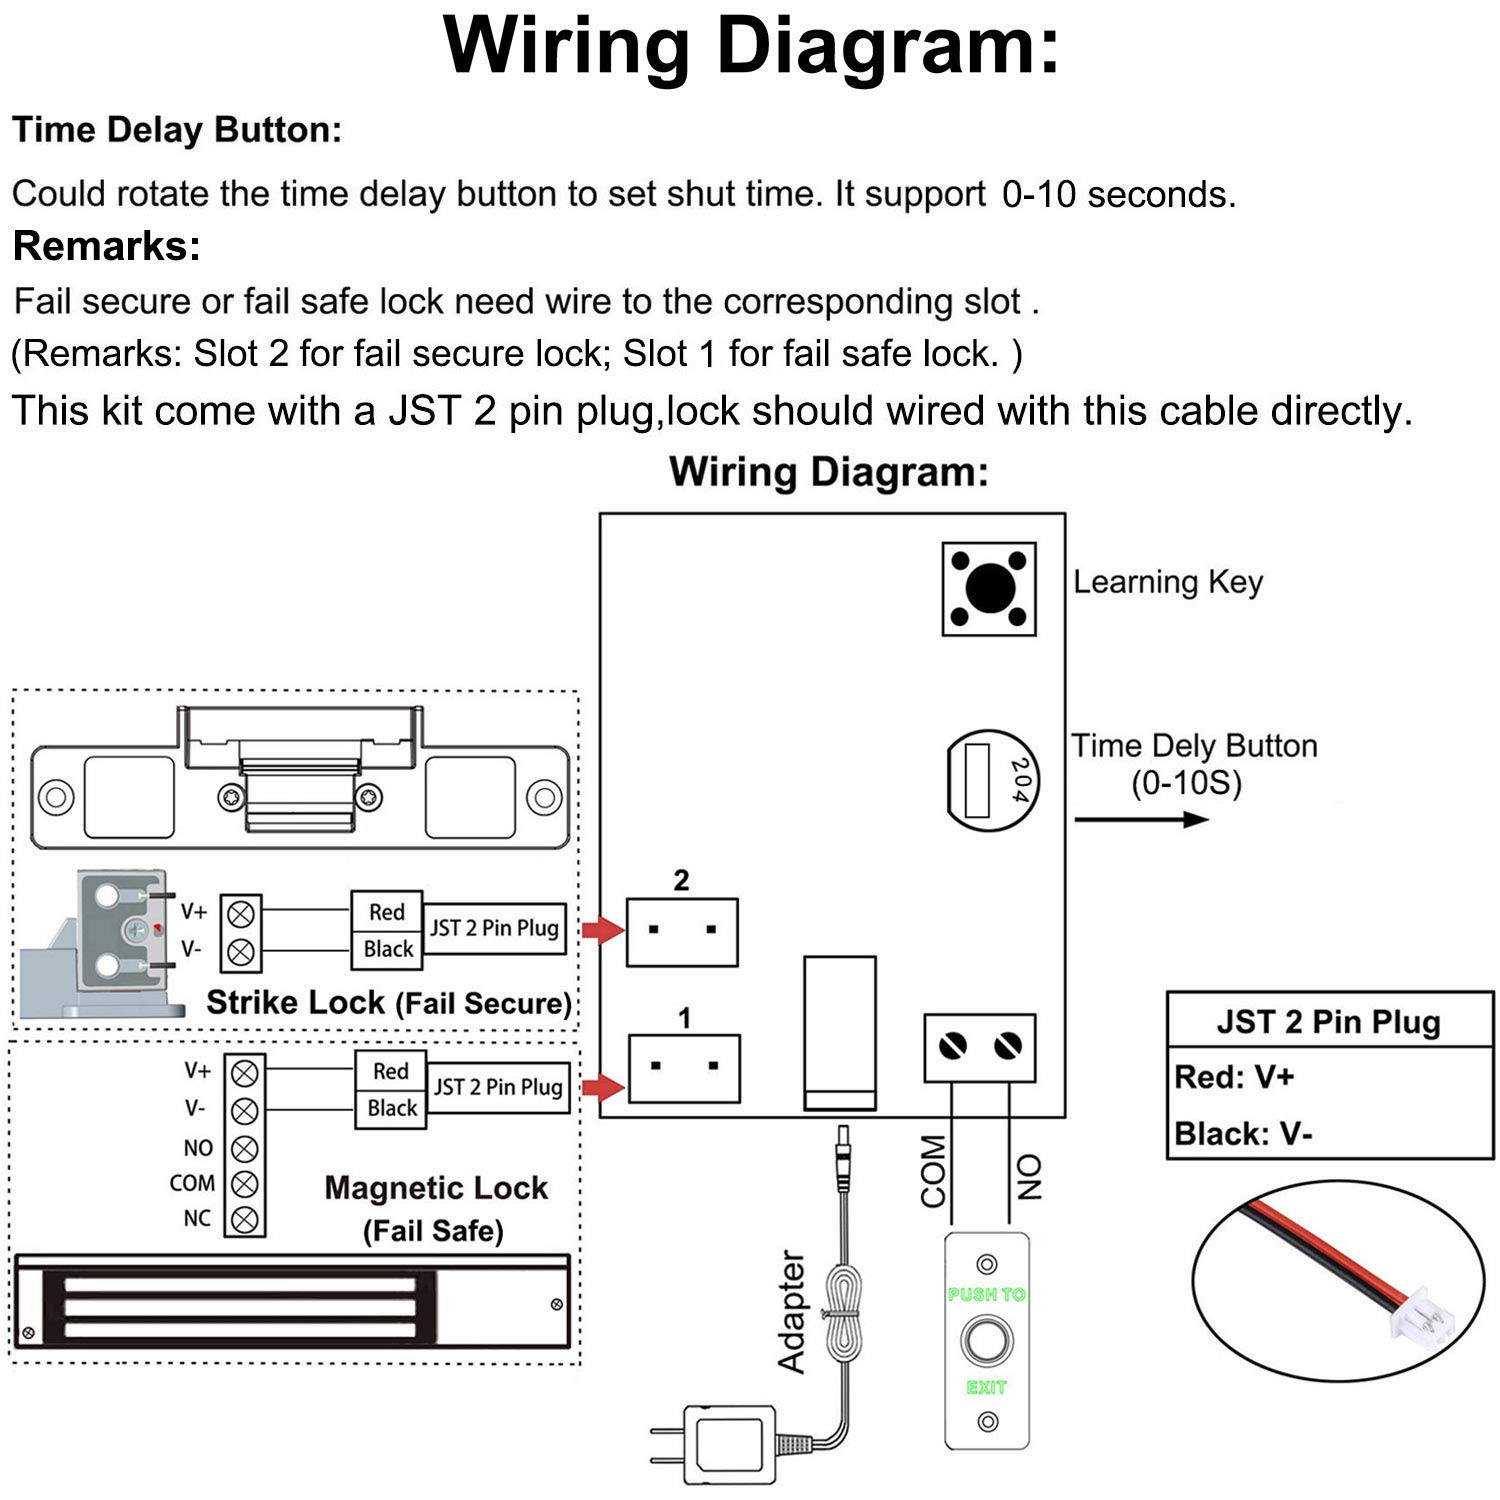 Wiring Diagram Of Providing Power To A Fail Safe Maglock